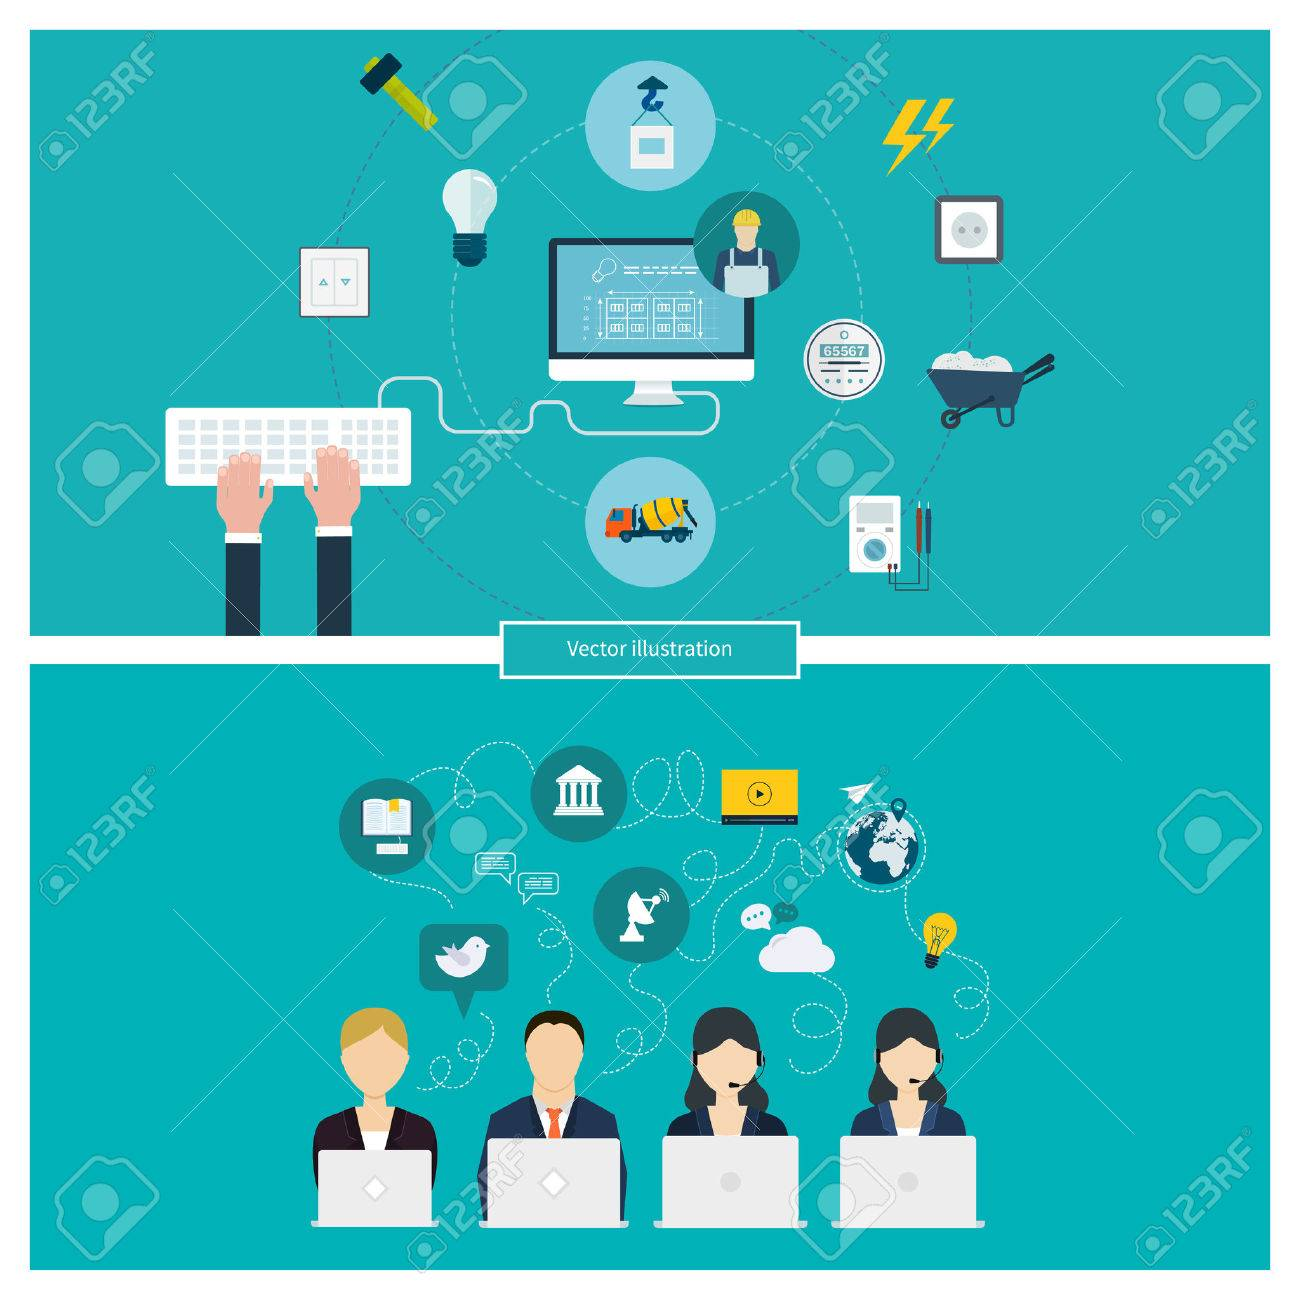 Concept Of Social Media Network Project Management Time  Concept Of Social Media Network Project Management Time Management Marketing Research Strategic Plan Stock Vector Photo  Concept Of Social Media Network Project Management Time Management Marketing Research Strategic Plan